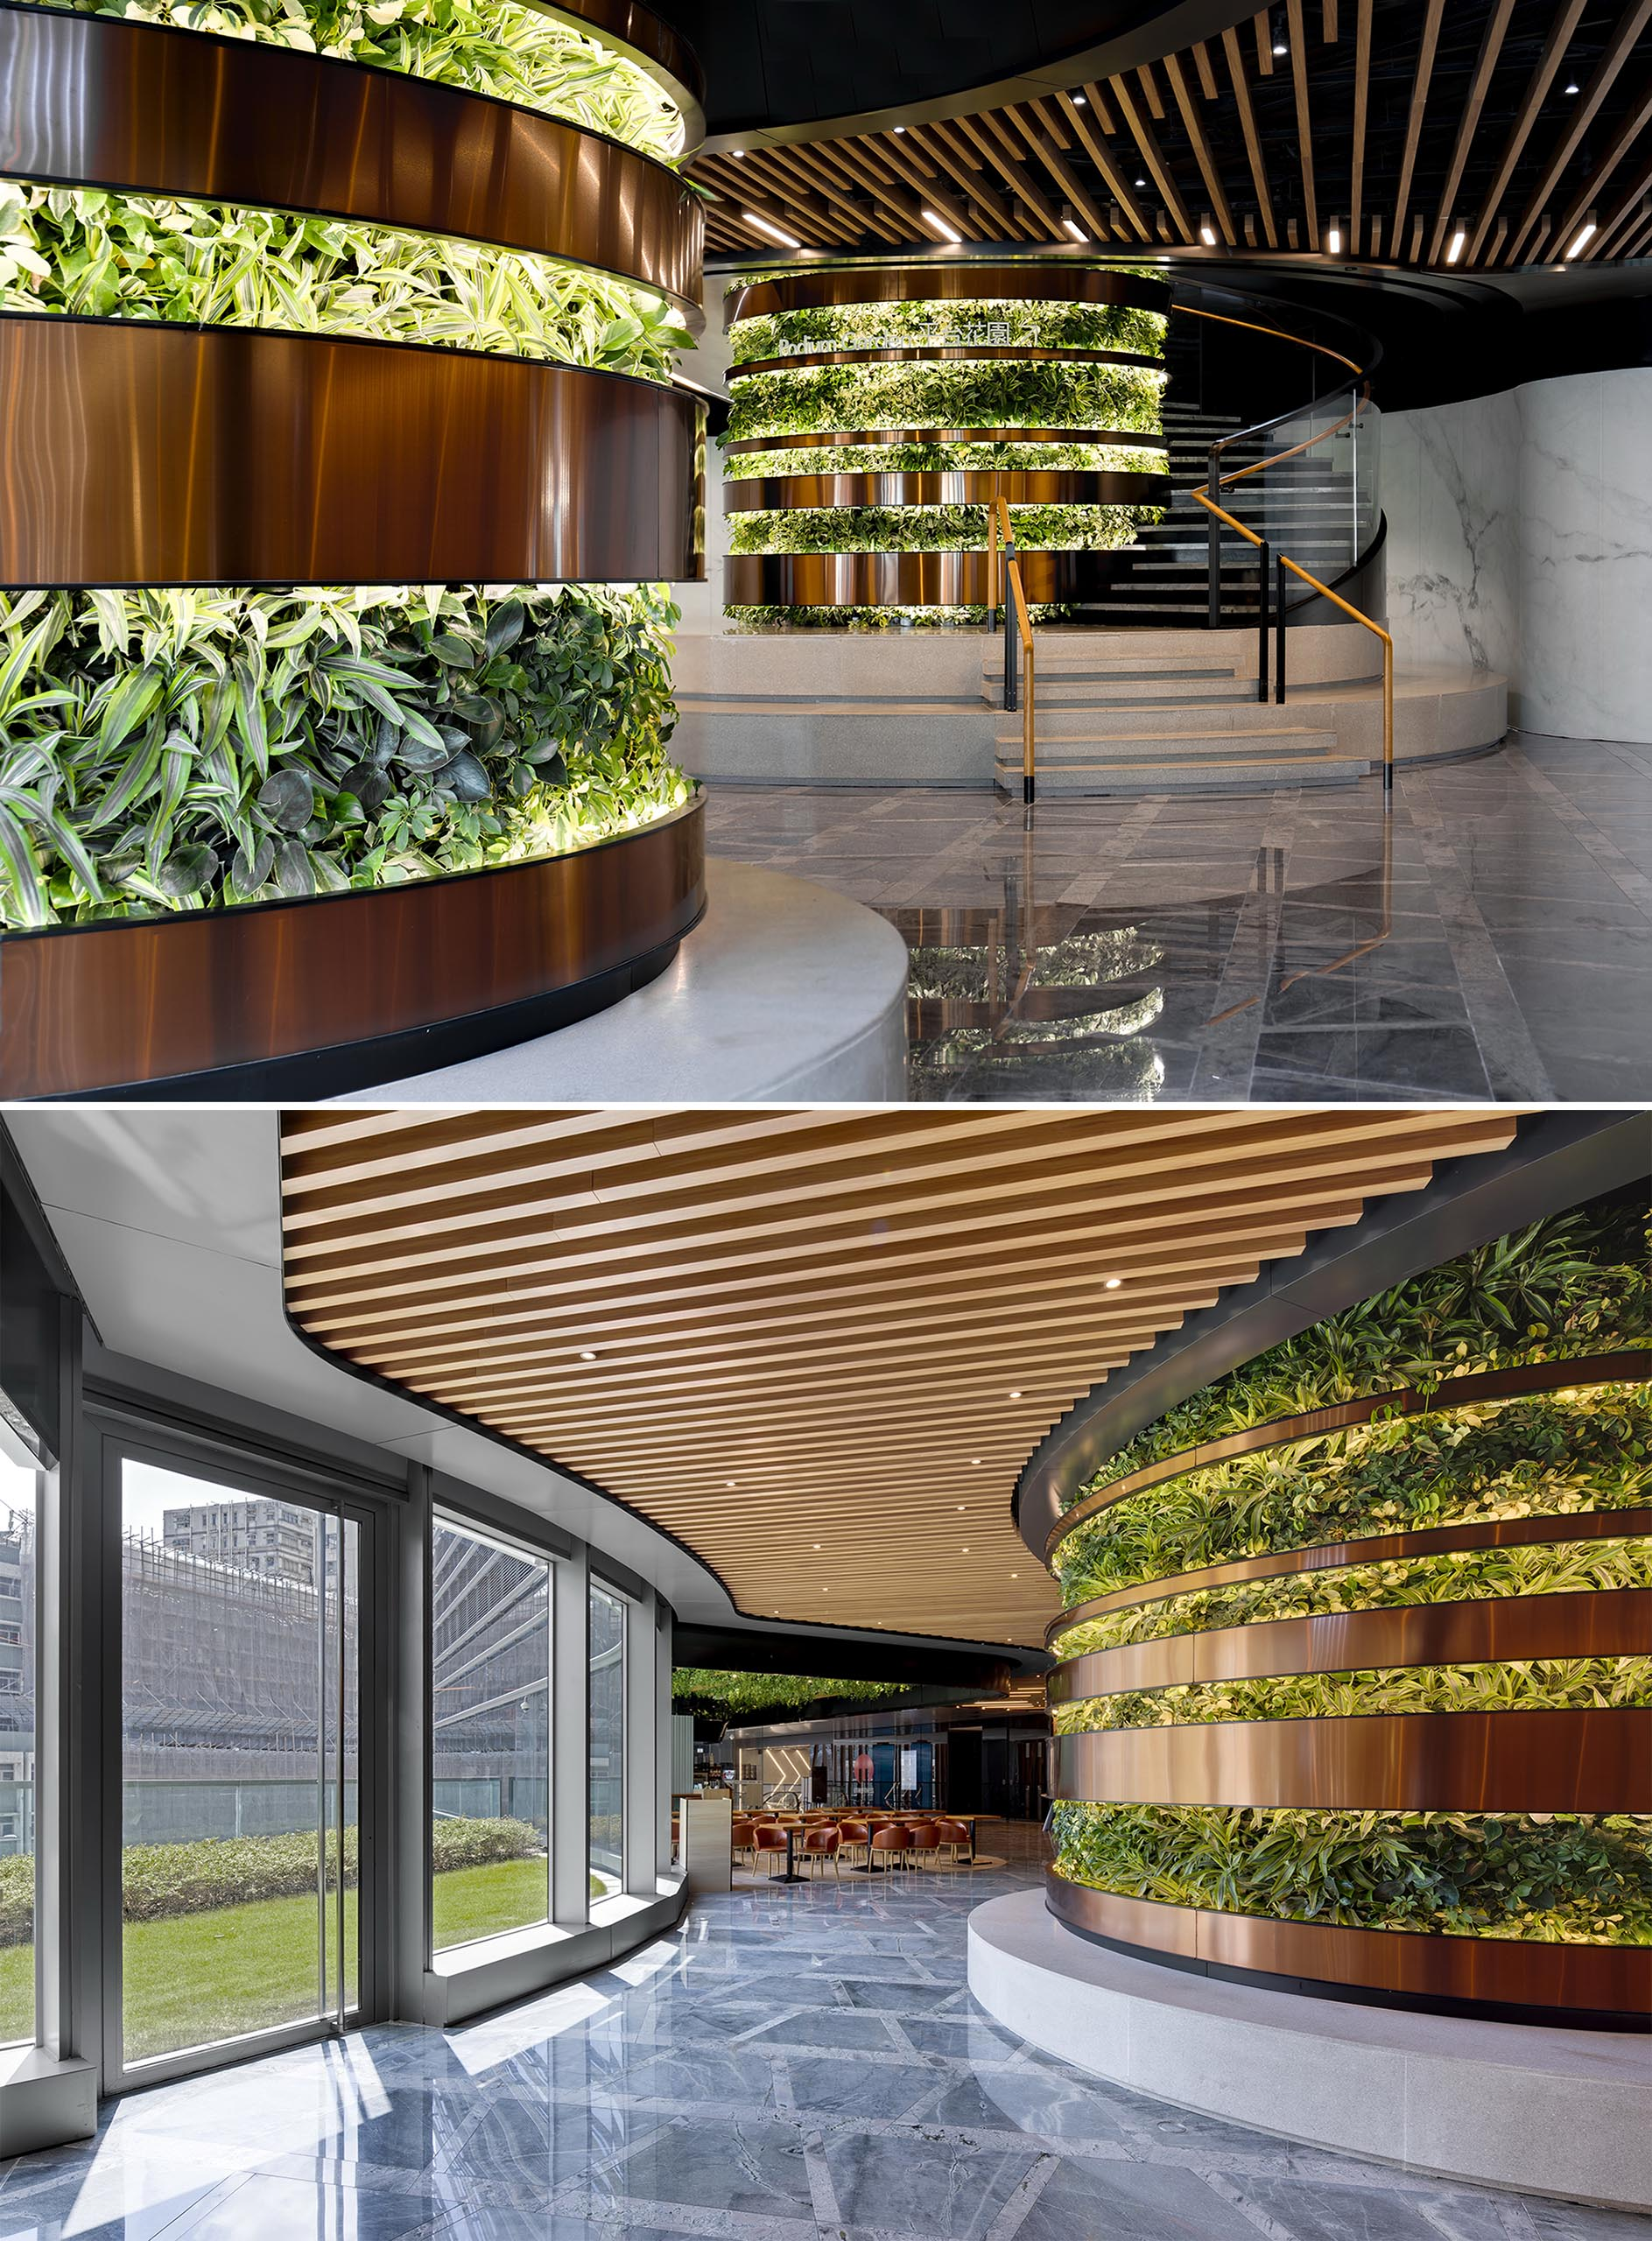 Vertical gardens separated by metallic strips have lighting to showcase the plants.